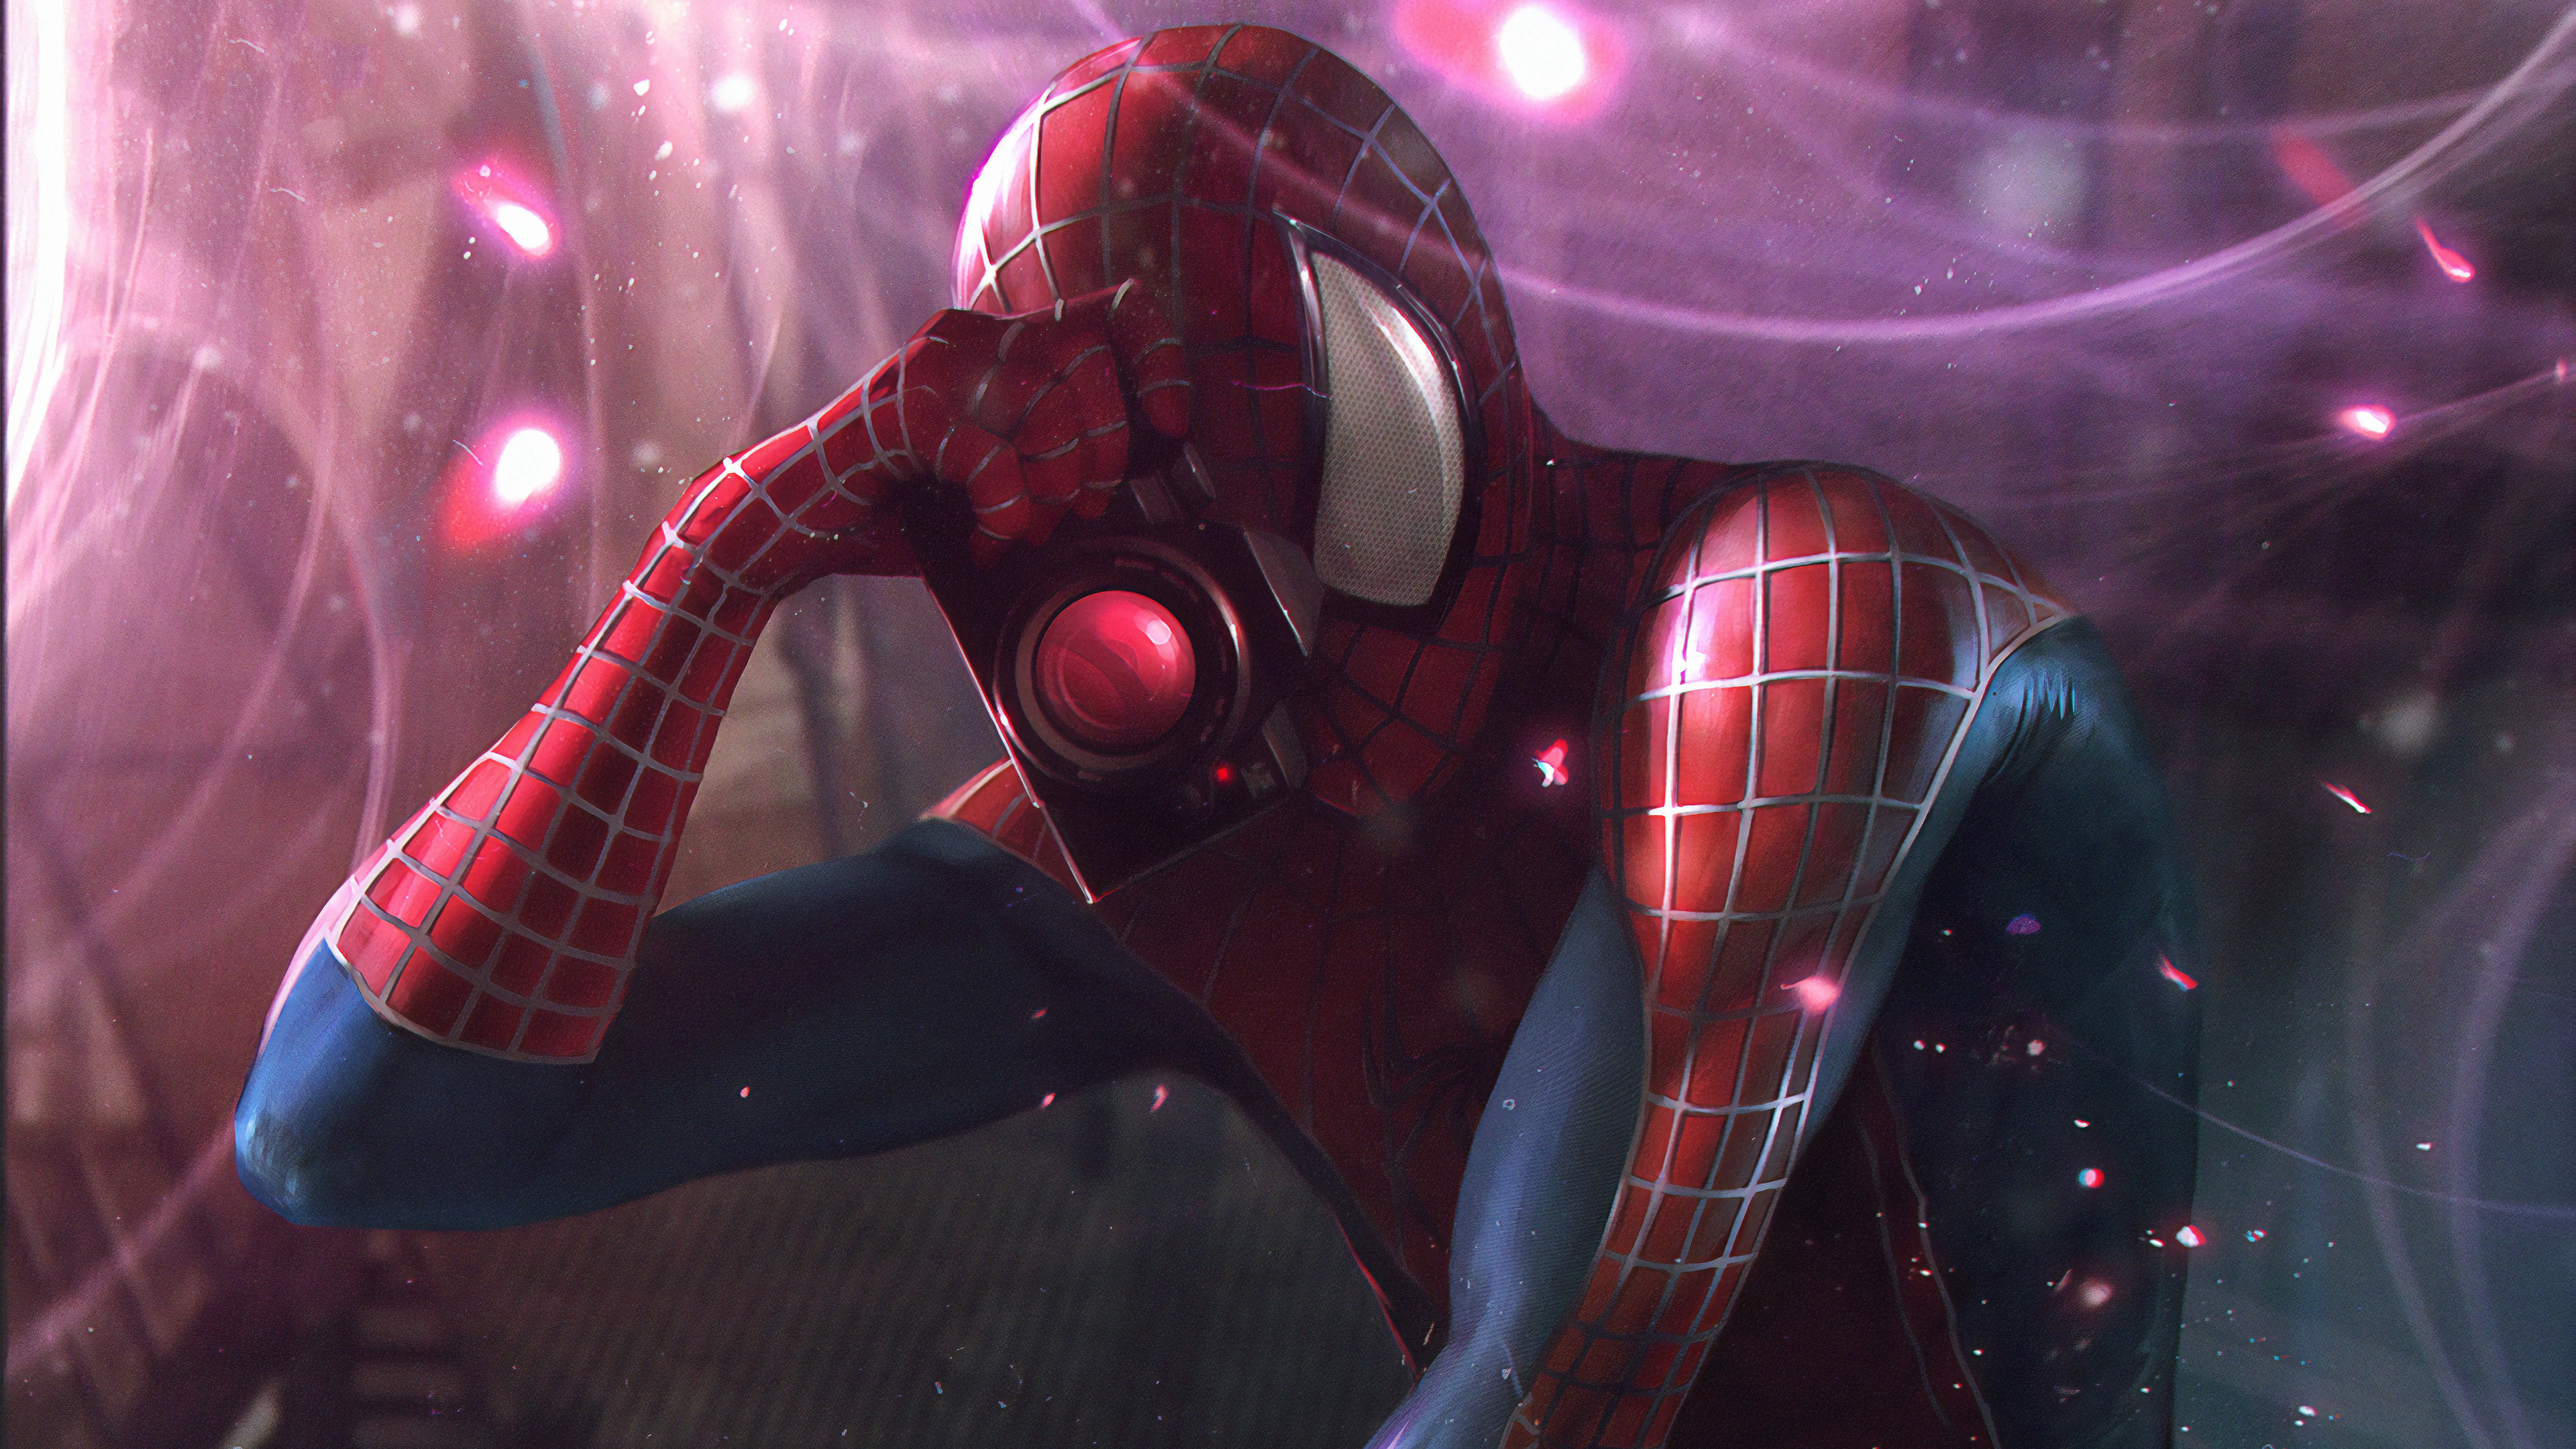 spiderman clicking pictures 1565054205 - Spiderman Clicking Pictures - superheroes wallpapers, spiderman wallpapers, hd-wallpapers, behance wallpapers, artwork wallpapers, 4k-wallpapers